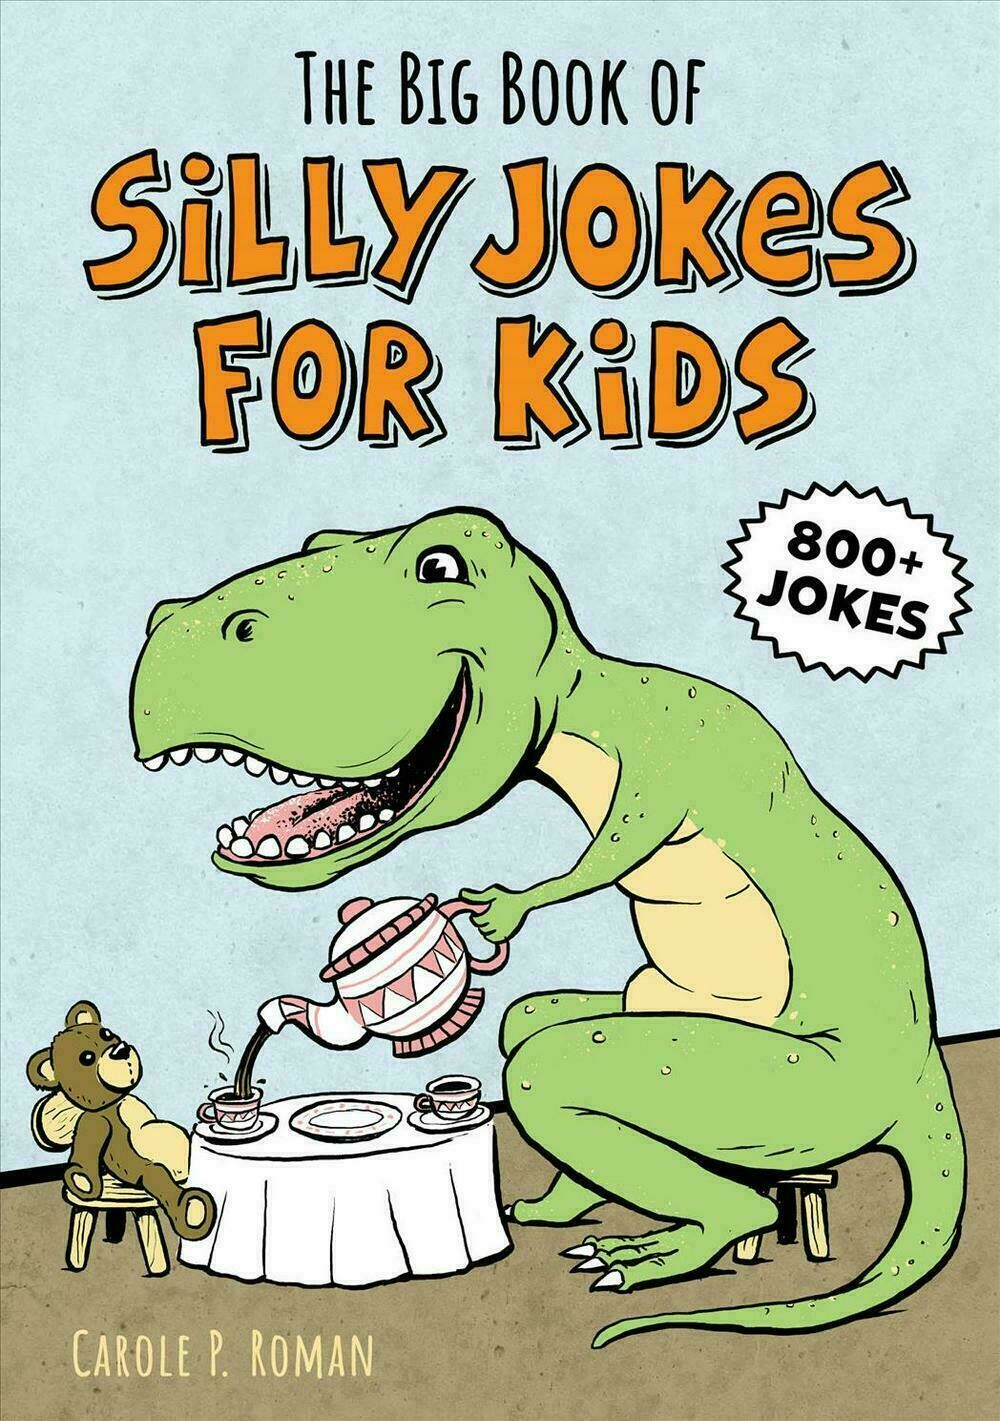 The Big Book of Silly Jokes for Kids: 800+ Jokes! by Carole Roman (English) Papeperback